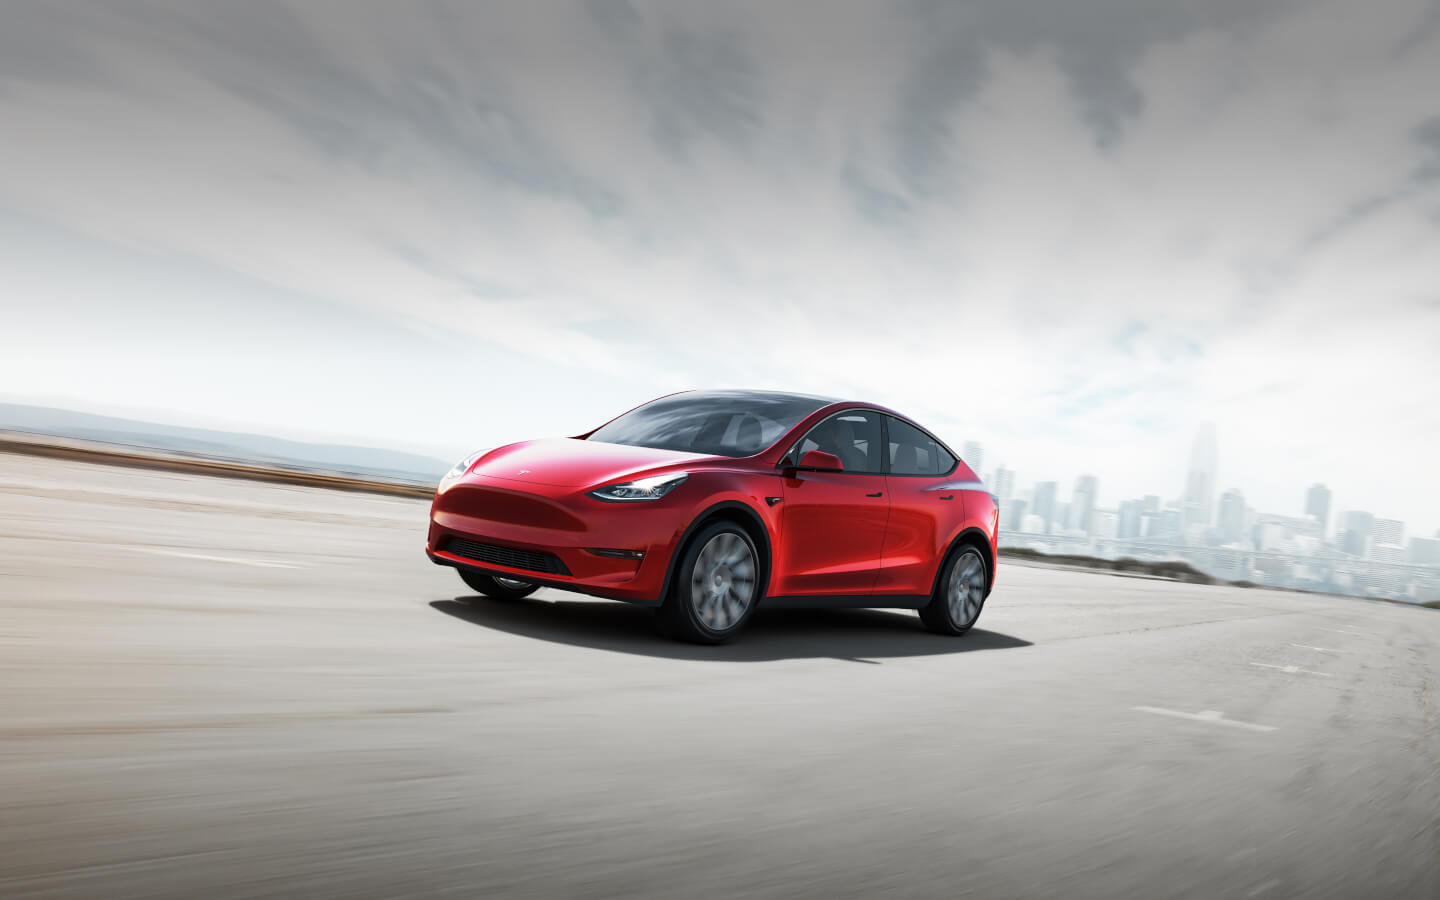 Musk adds new Model Y to electric auto line-up